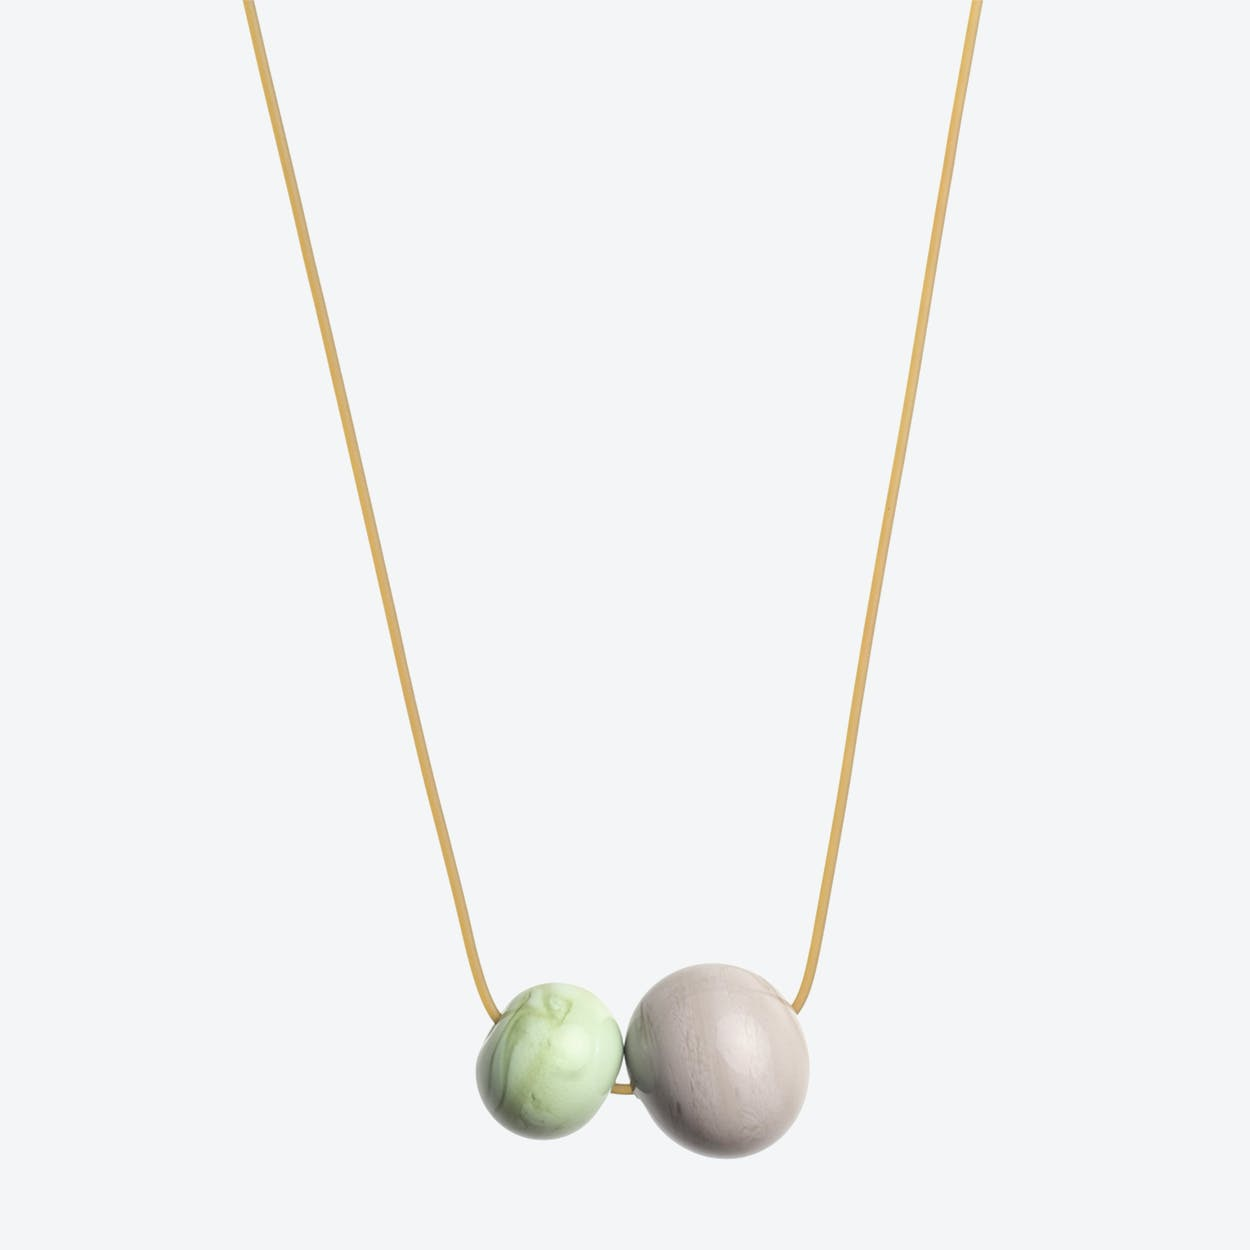 Double Bubble Necklace in Olive Green